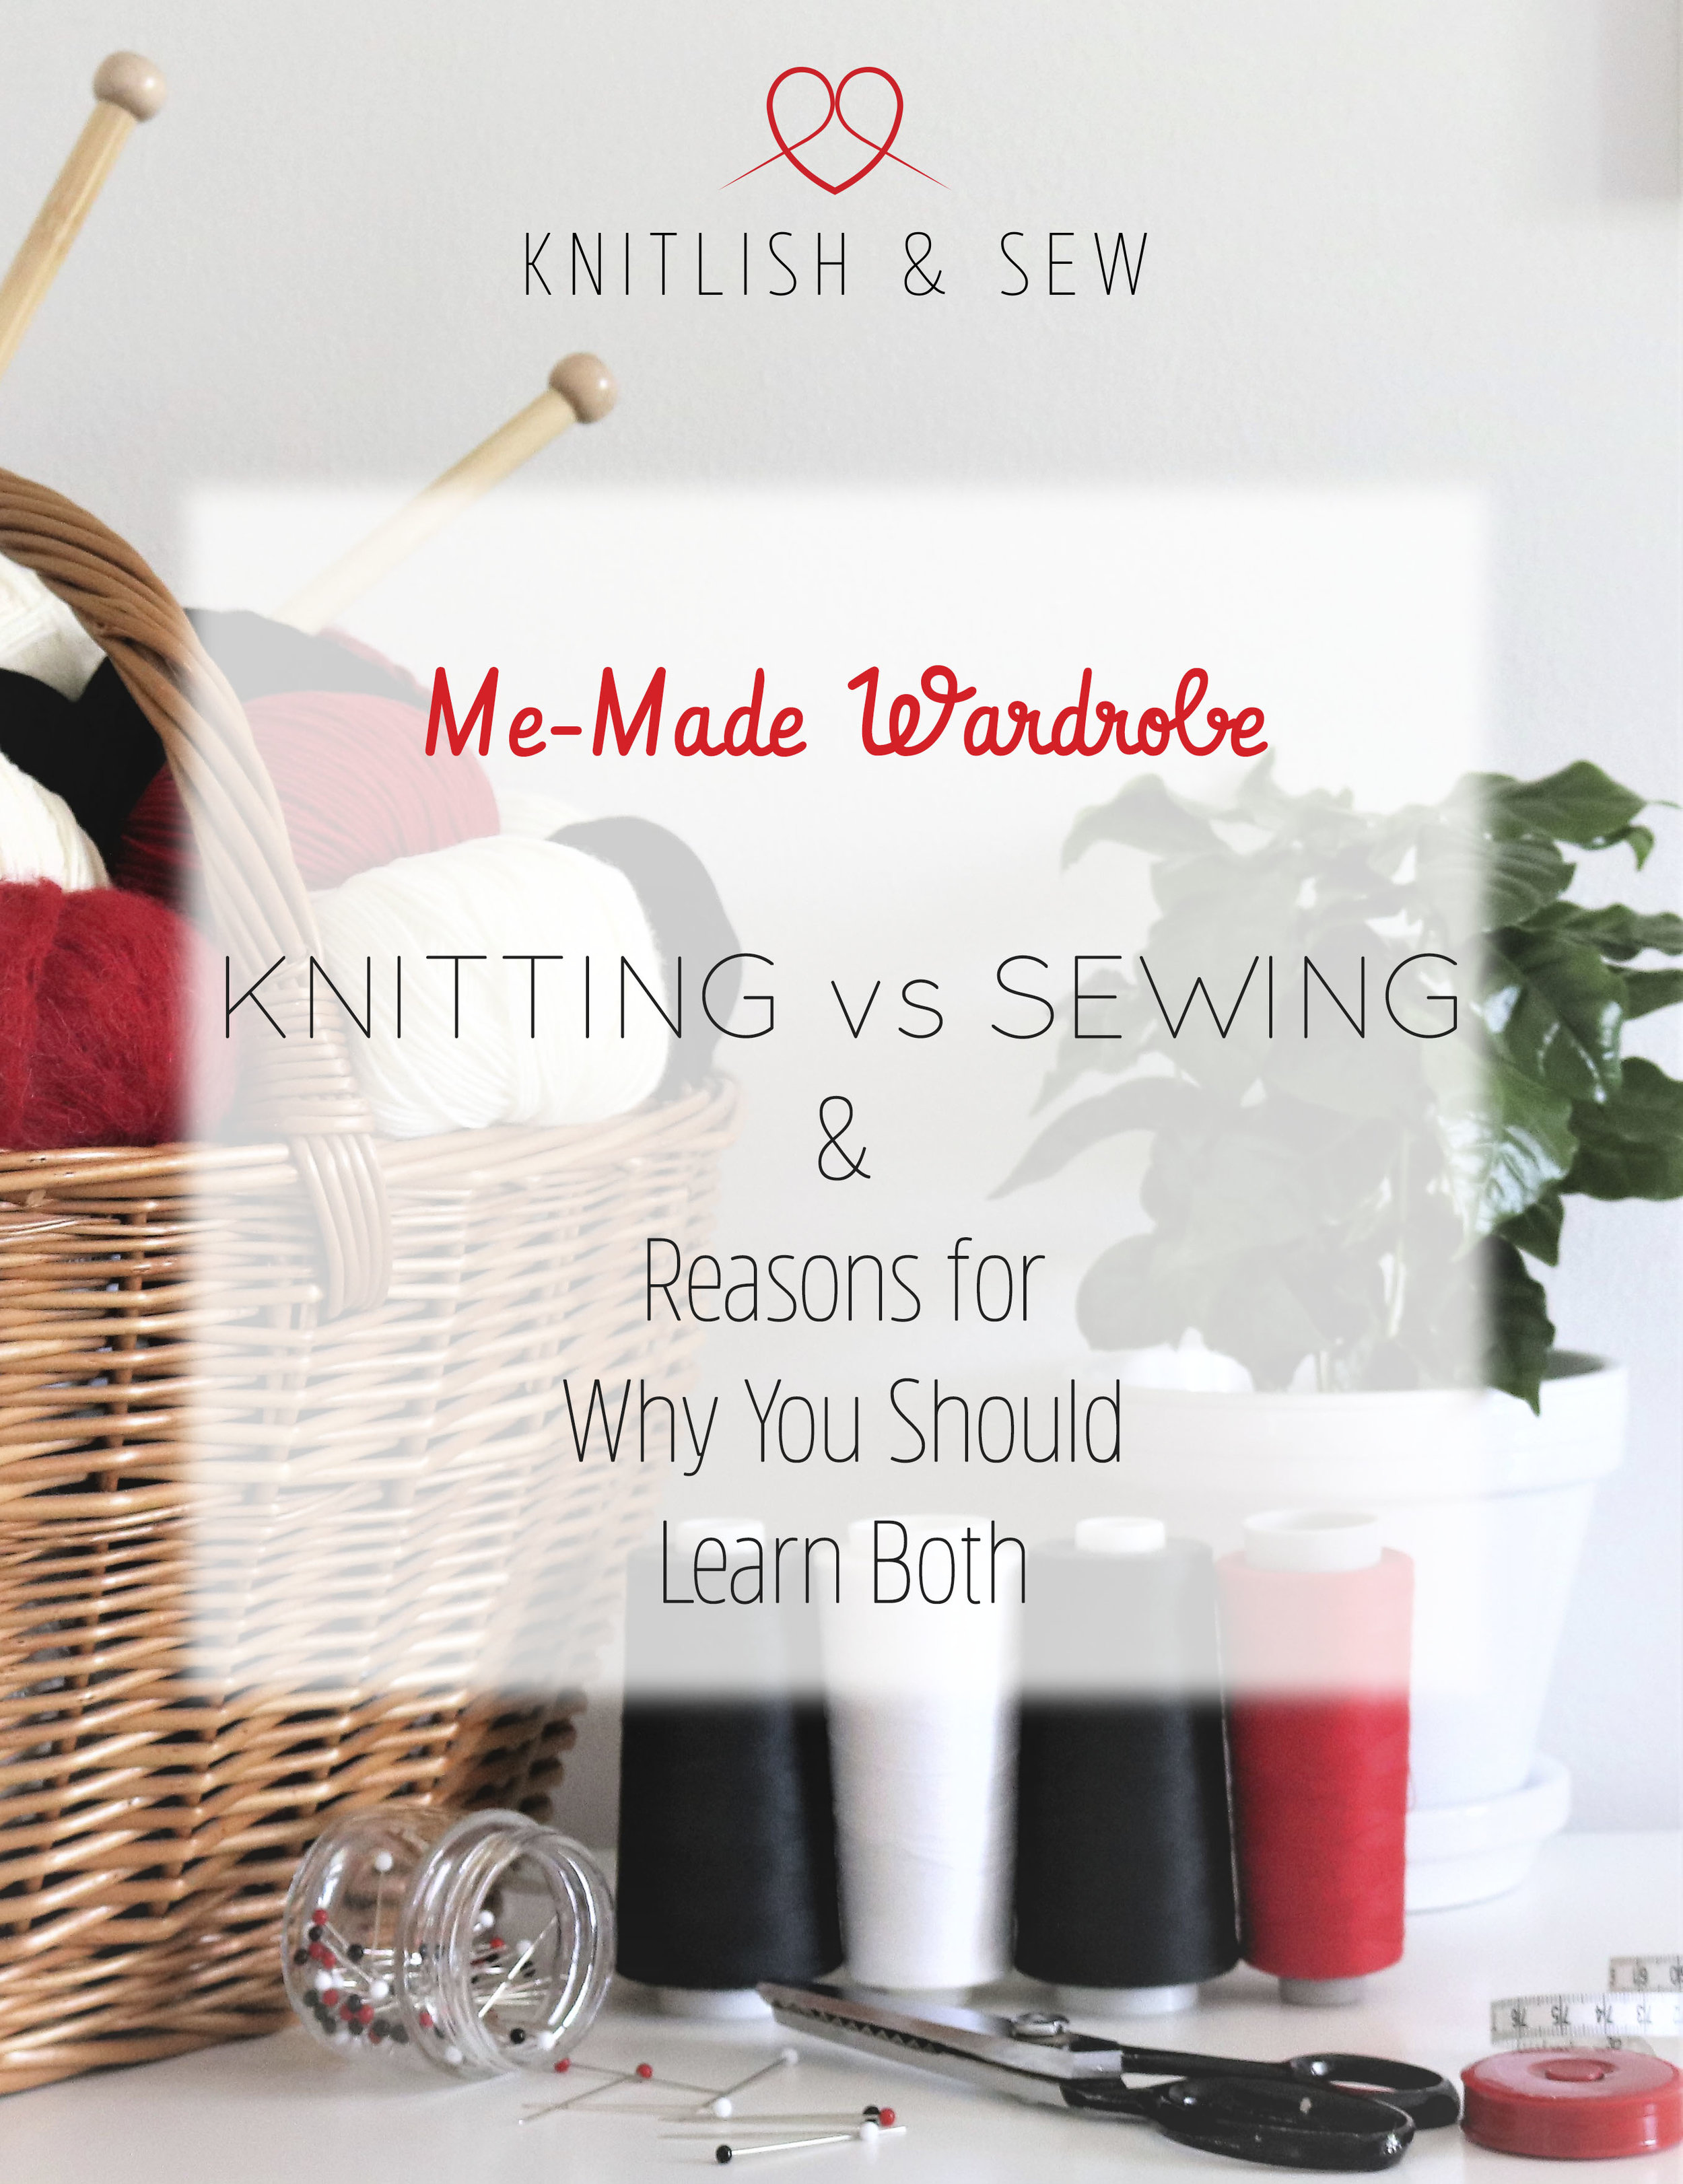 knitting_vs_sewing_and_why_learn_both_2.jpg